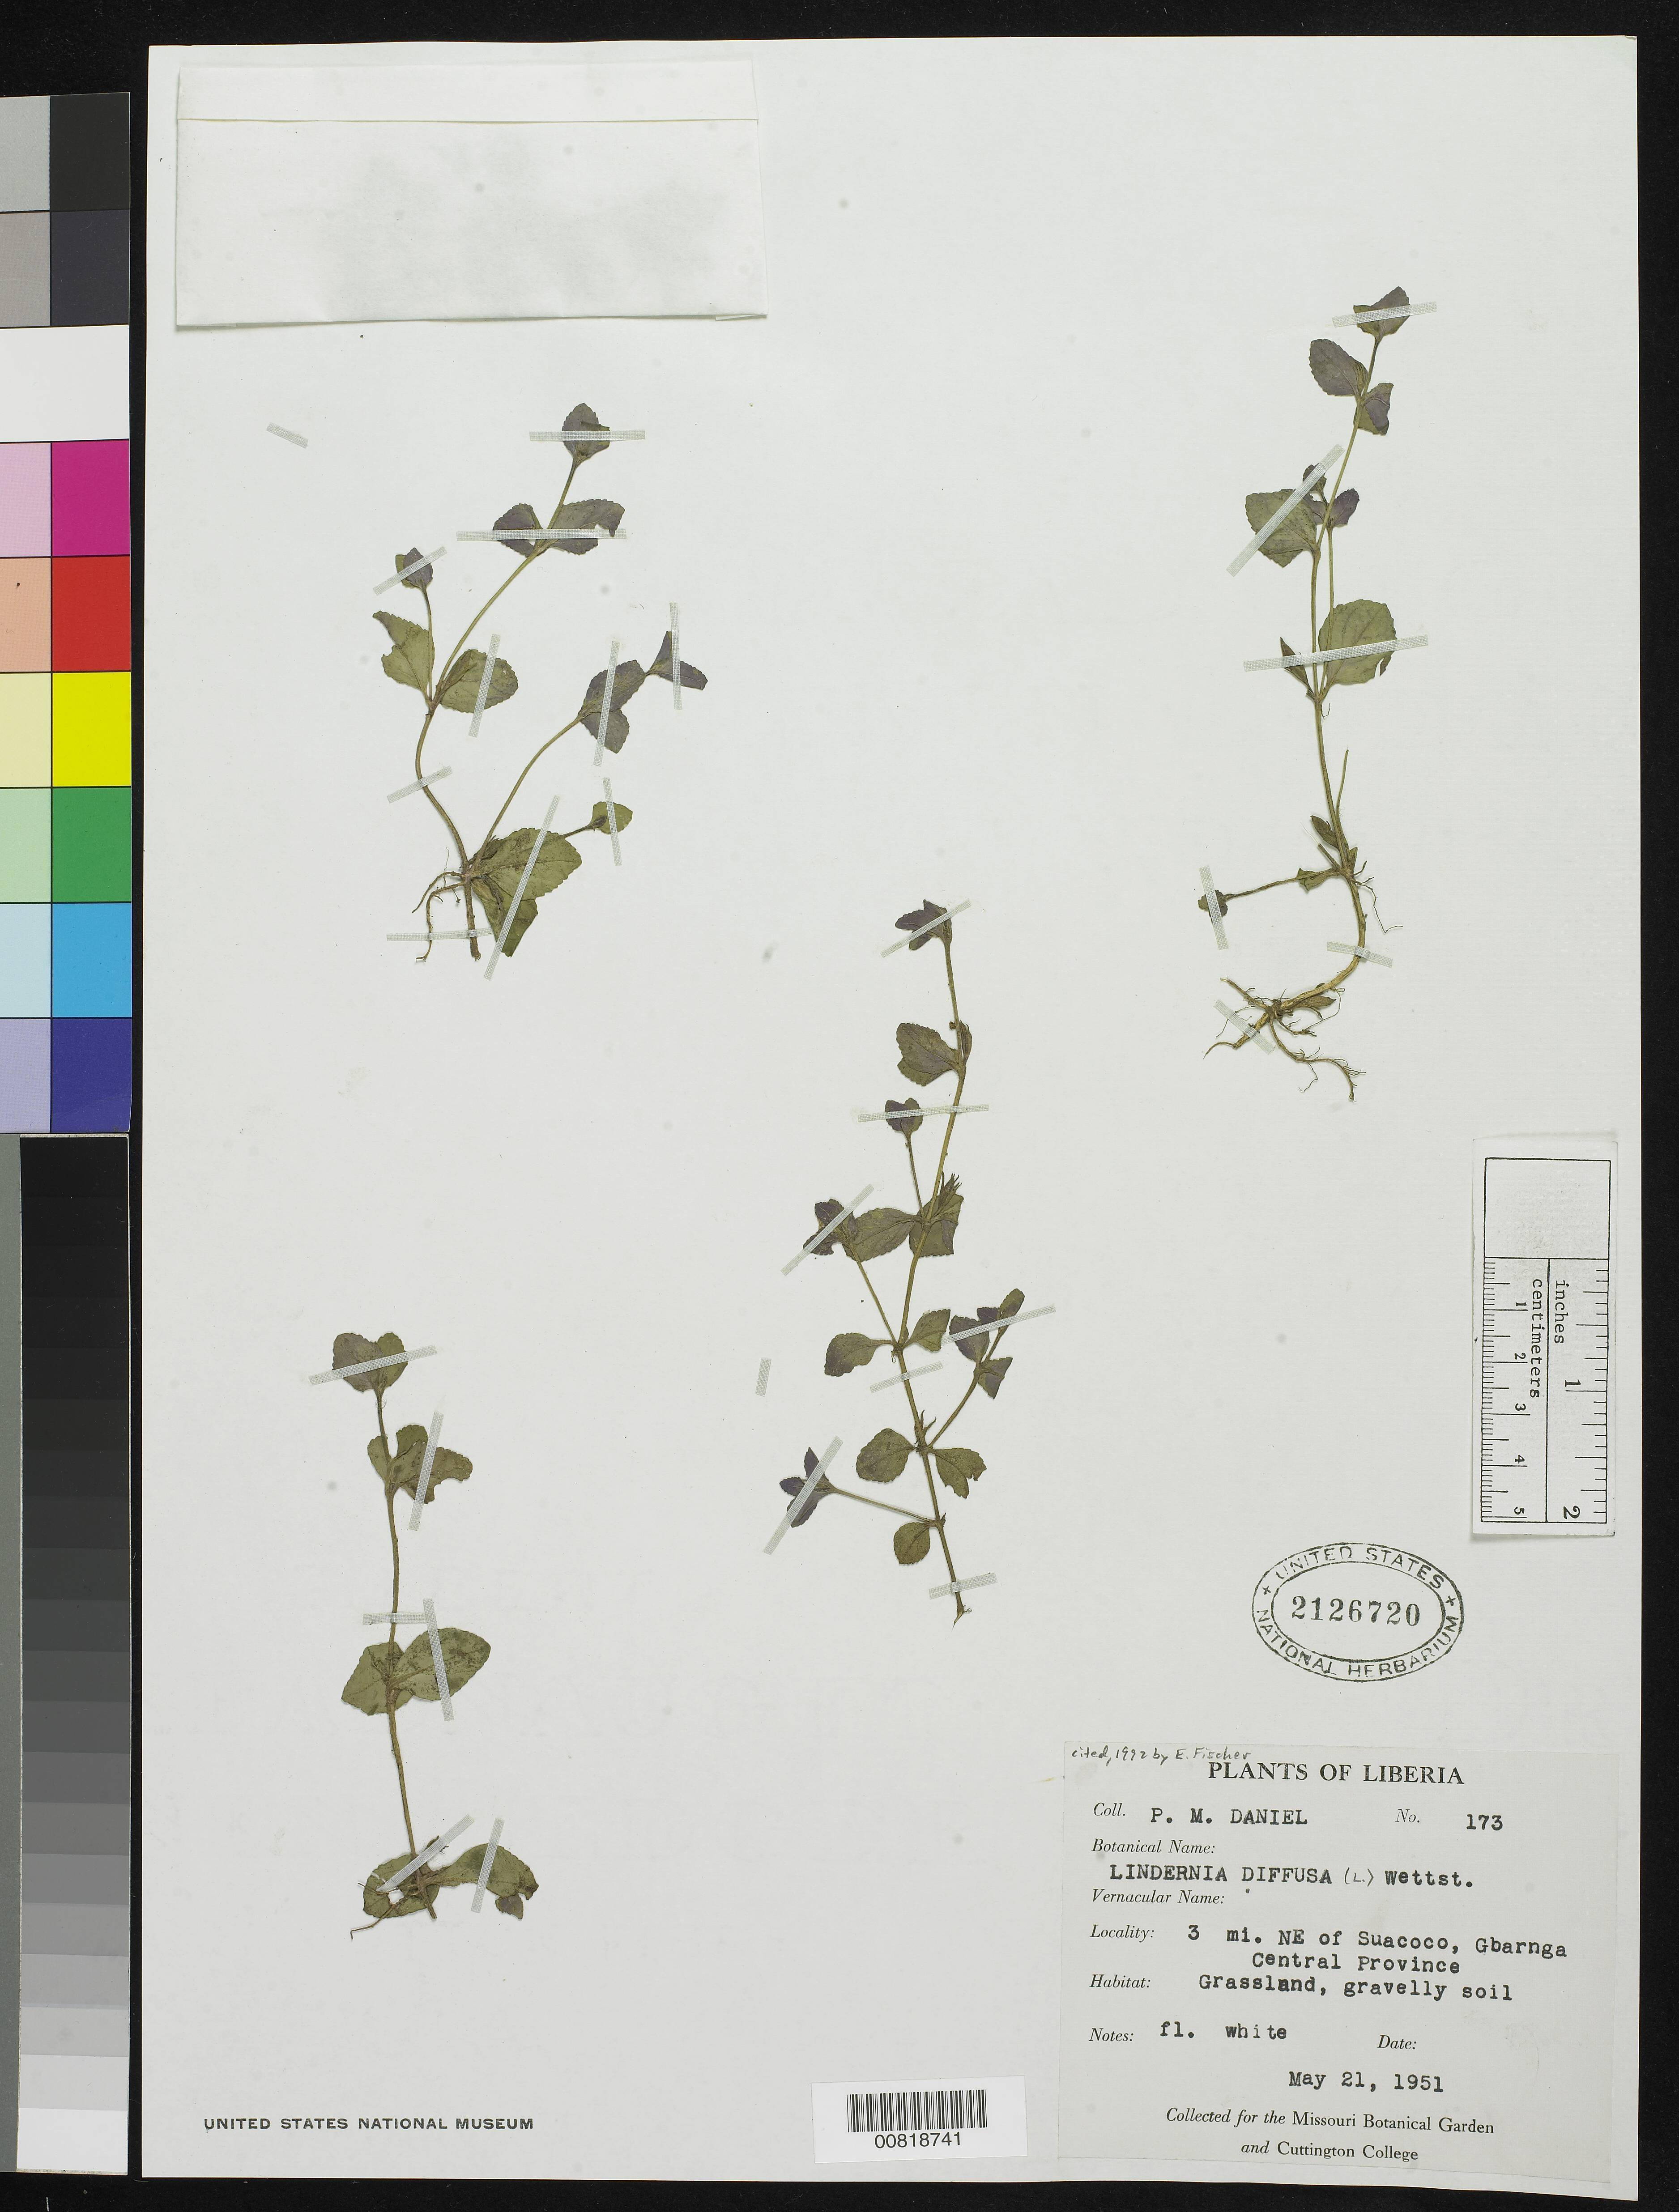 Image of spreading false pimpernel